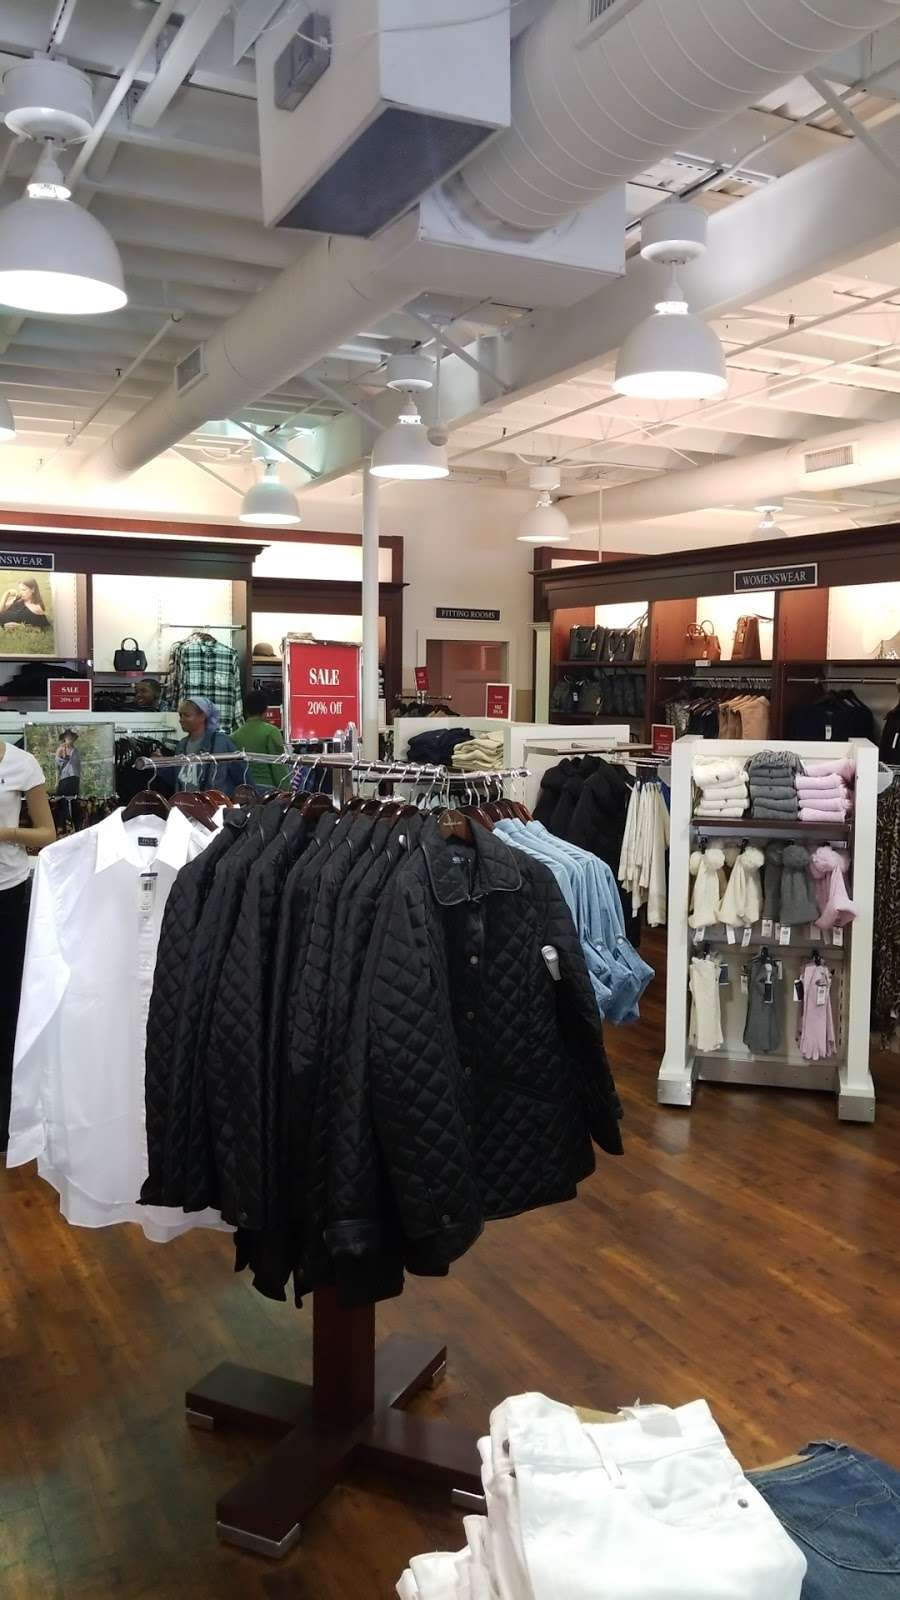 Polo Ralph Lauren Factory Store - clothing store    Photo 4 of 10   Address: 203 Outlet Center Dr, Queenstown, MD 21658, USA   Phone: (410) 827-5039